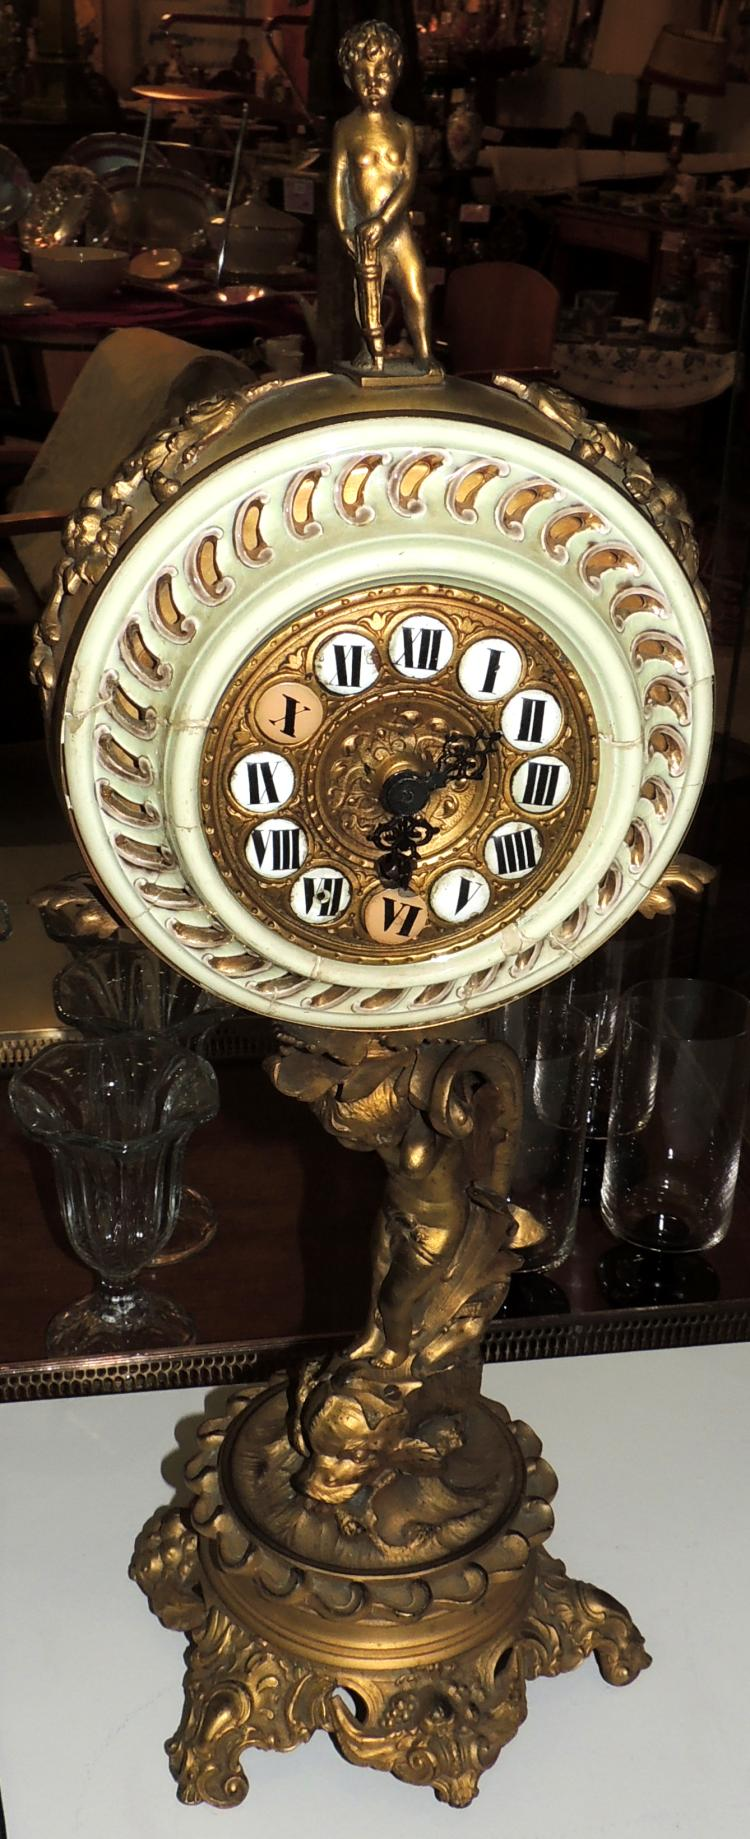 DESKTOP CLOCK in bronze figure as a column with enamel decoration.Missing cap and key.Height: 57 cm